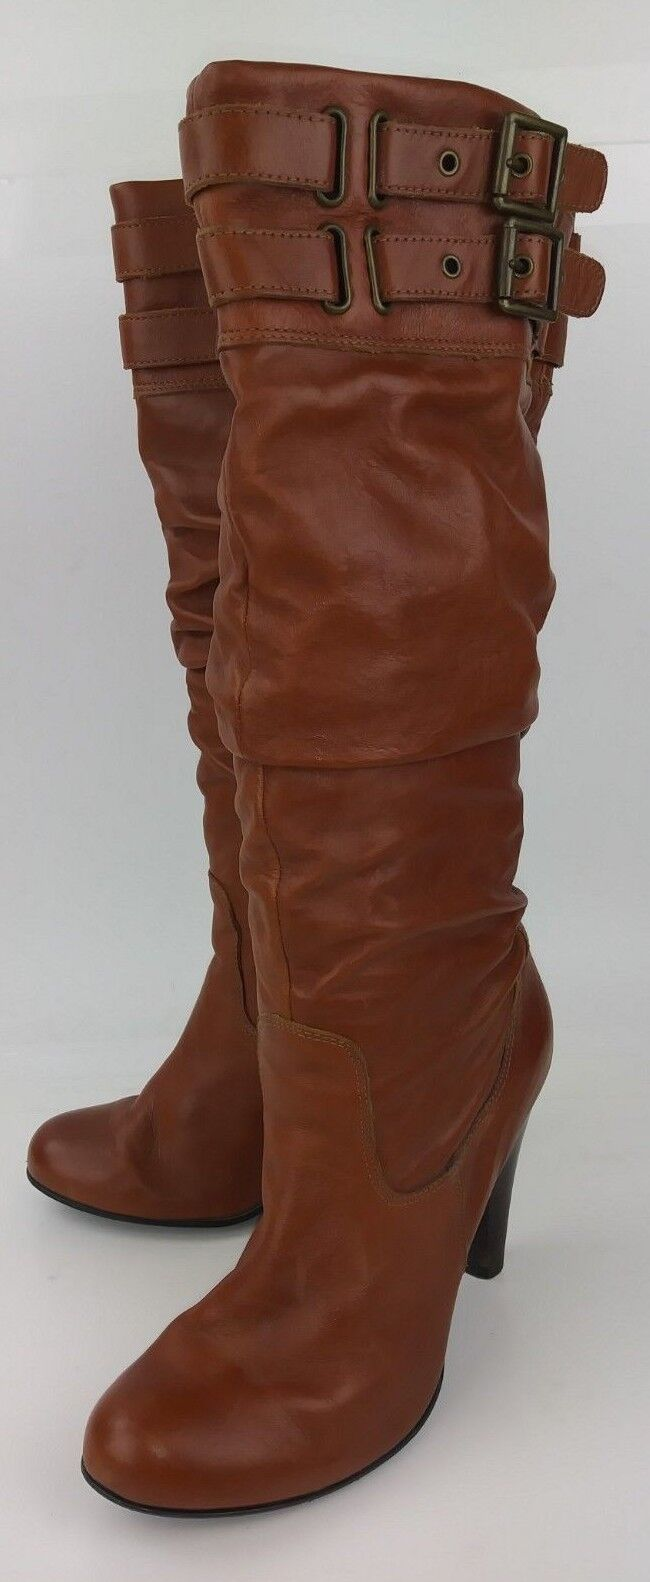 Aldo Wos Boots Tall EU 39 Brown Leather Slouchy Casual Heels 1411